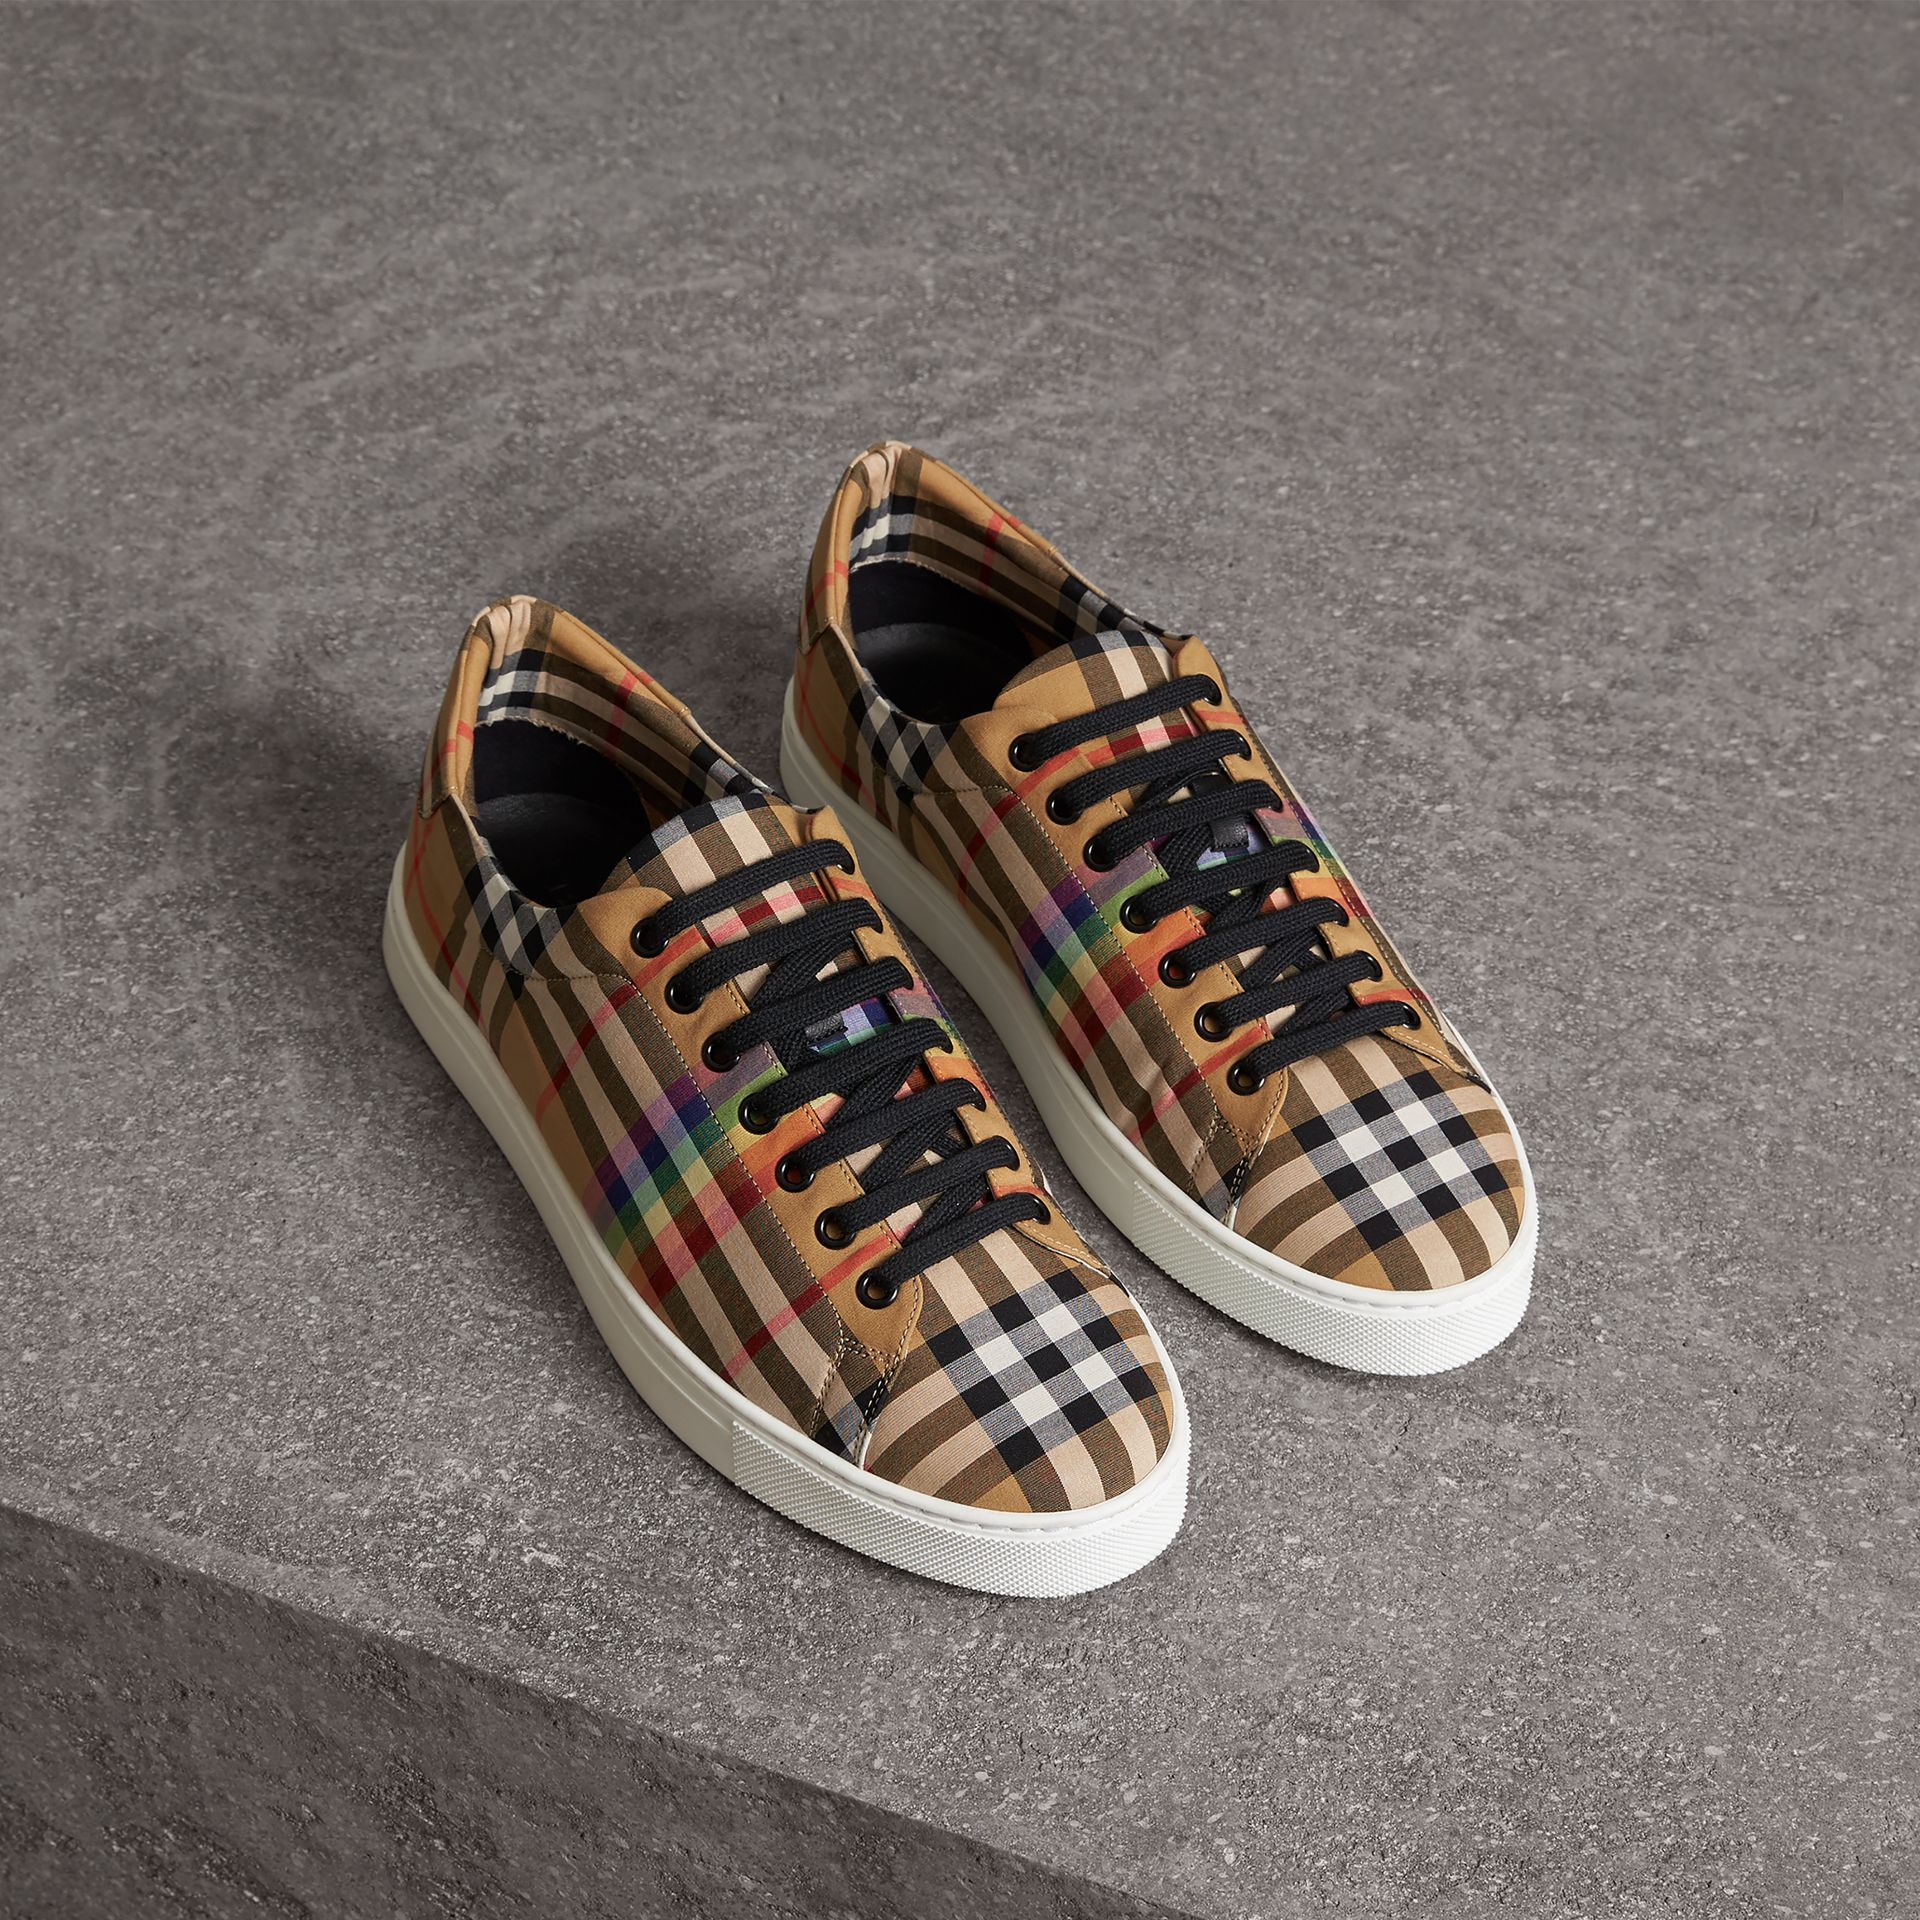 Sneakers à motif Rainbow Vintage check (Jaune Antique) - Homme | Burberry - photo de la galerie 0